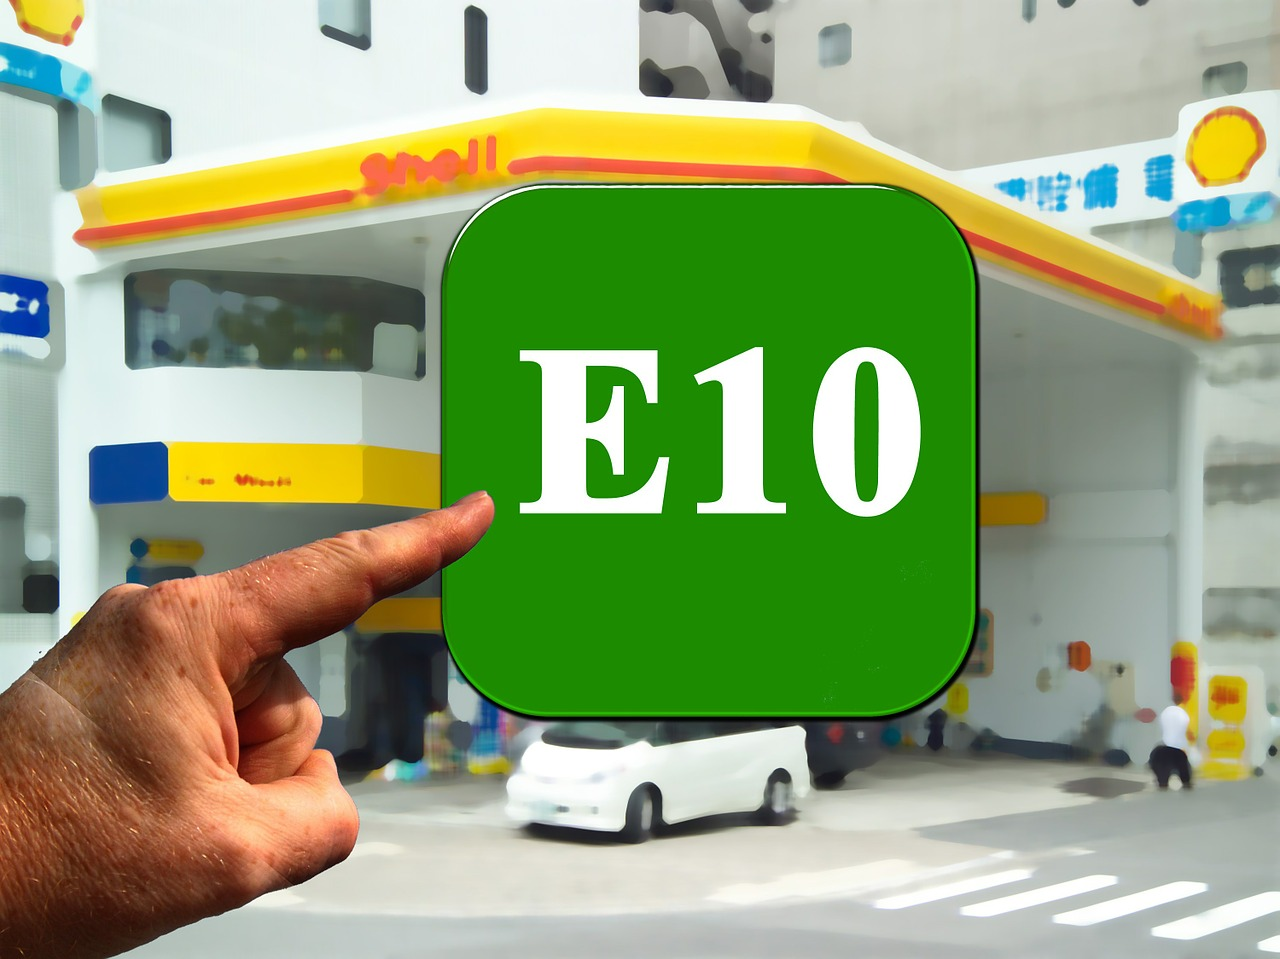 petrol,petrol stations,refuel,e10,gas,fuel,gas pump,hand,show,standard,rule,free pictures, free photos, free images, royalty free, free illustrations, public domain